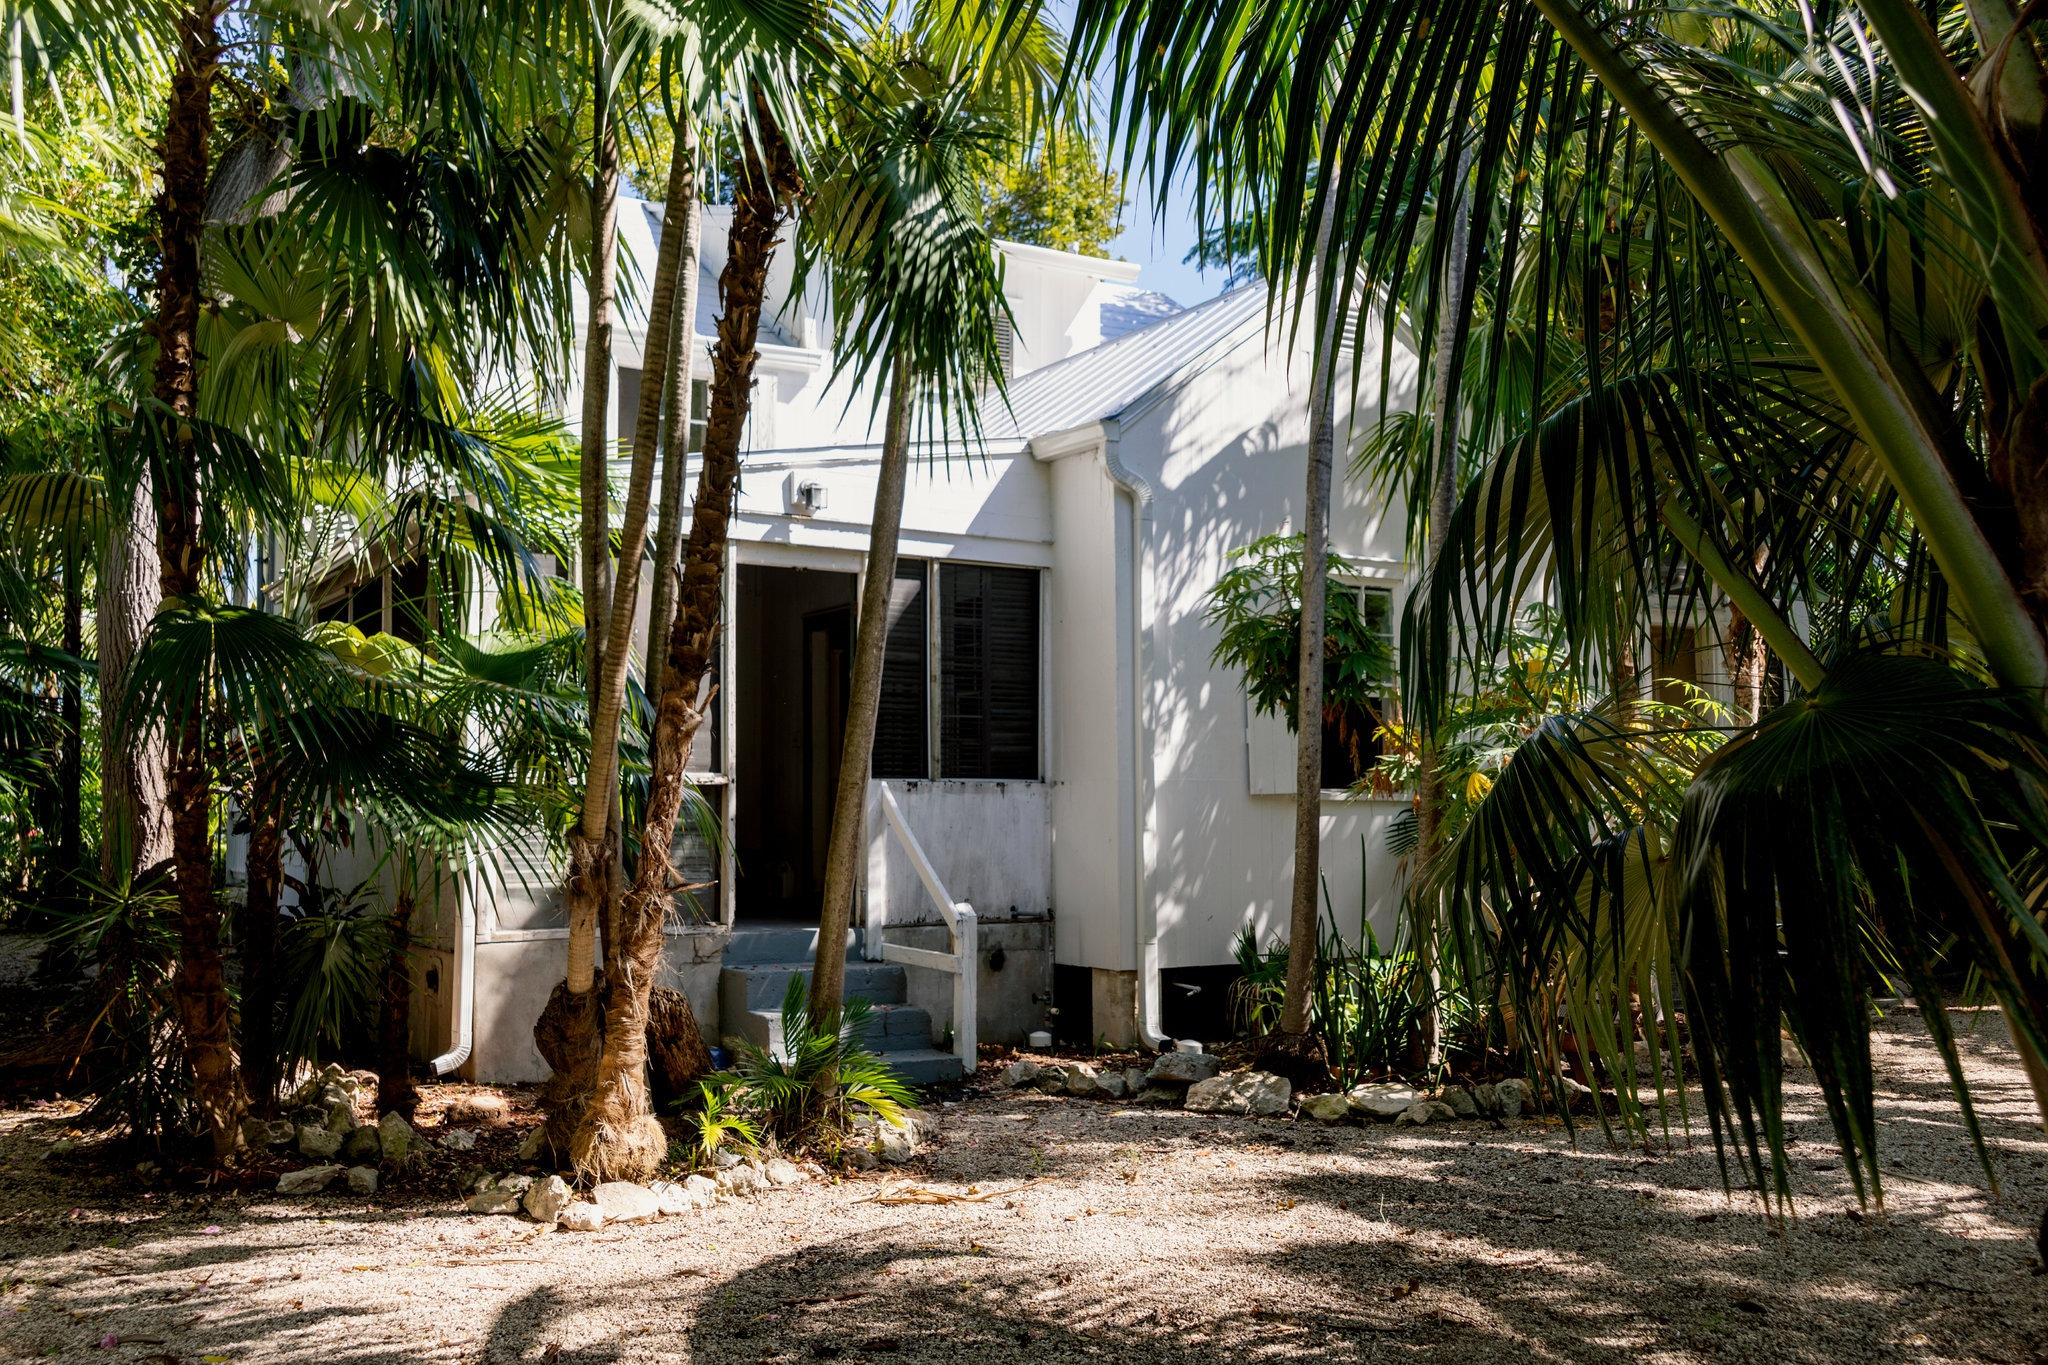 Bishop House in Key West, a white house standing behind palm trees